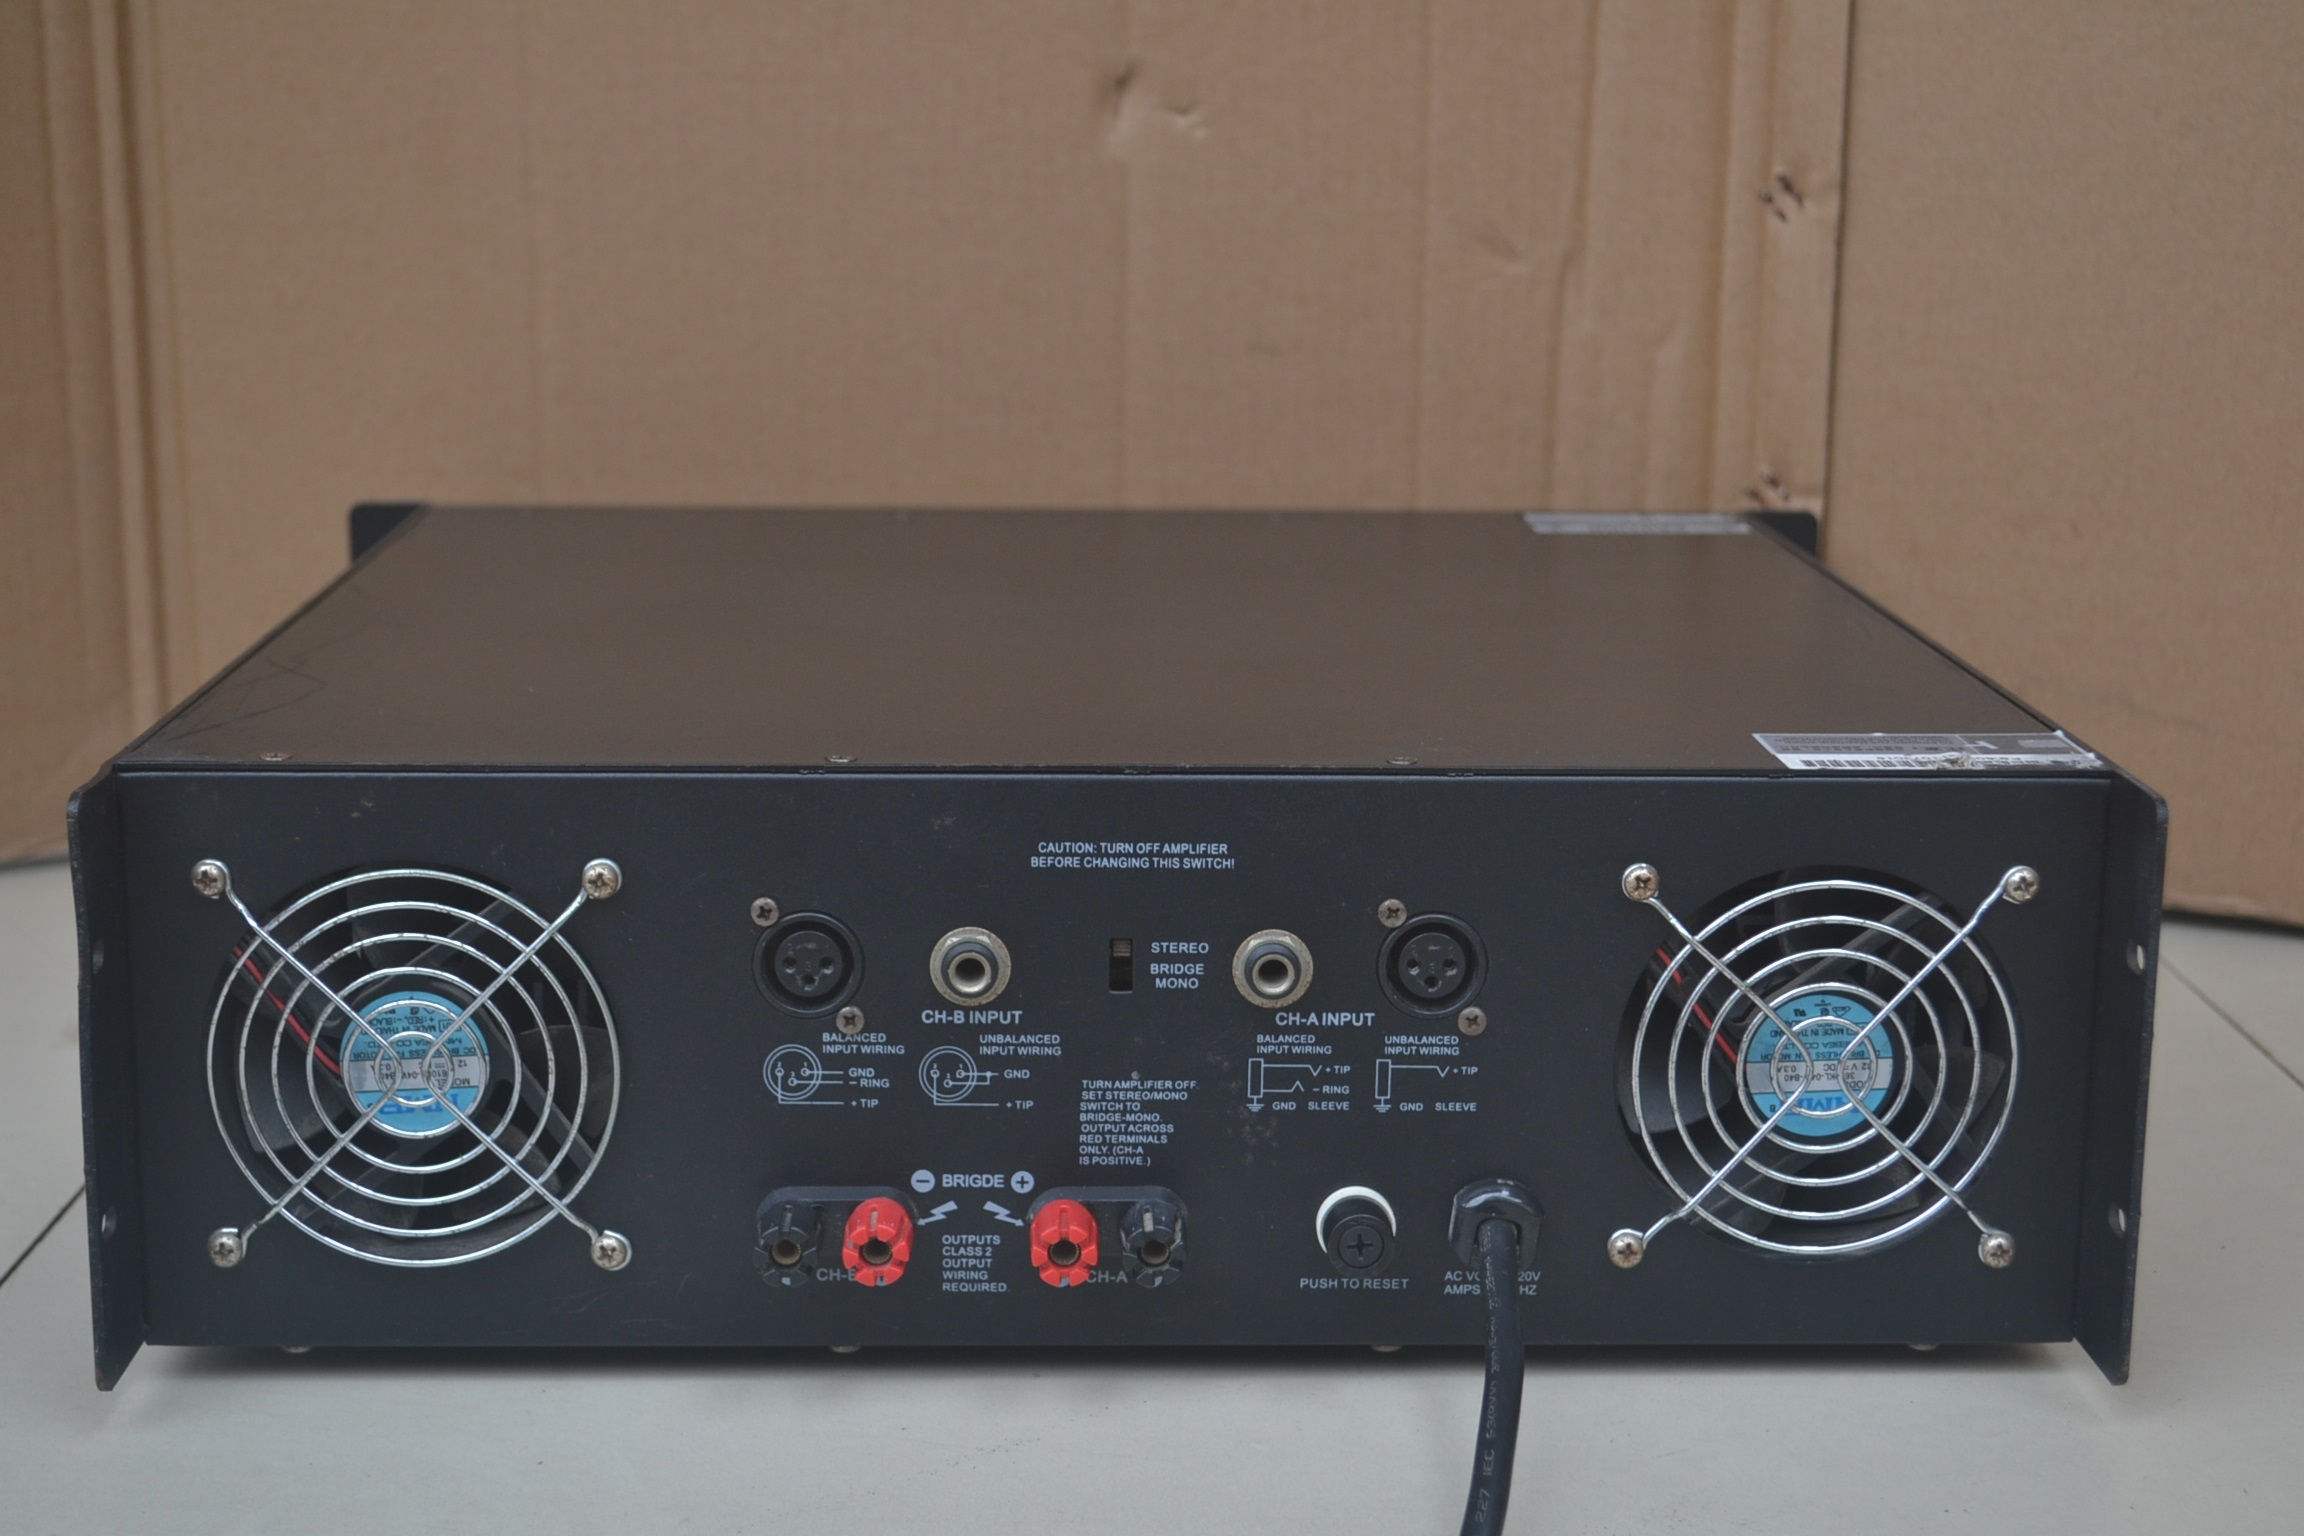 Usd 20589 Used Amplifier Enb Brand Sp 600 Stage Performance Audio 600w Lightbox Moreview